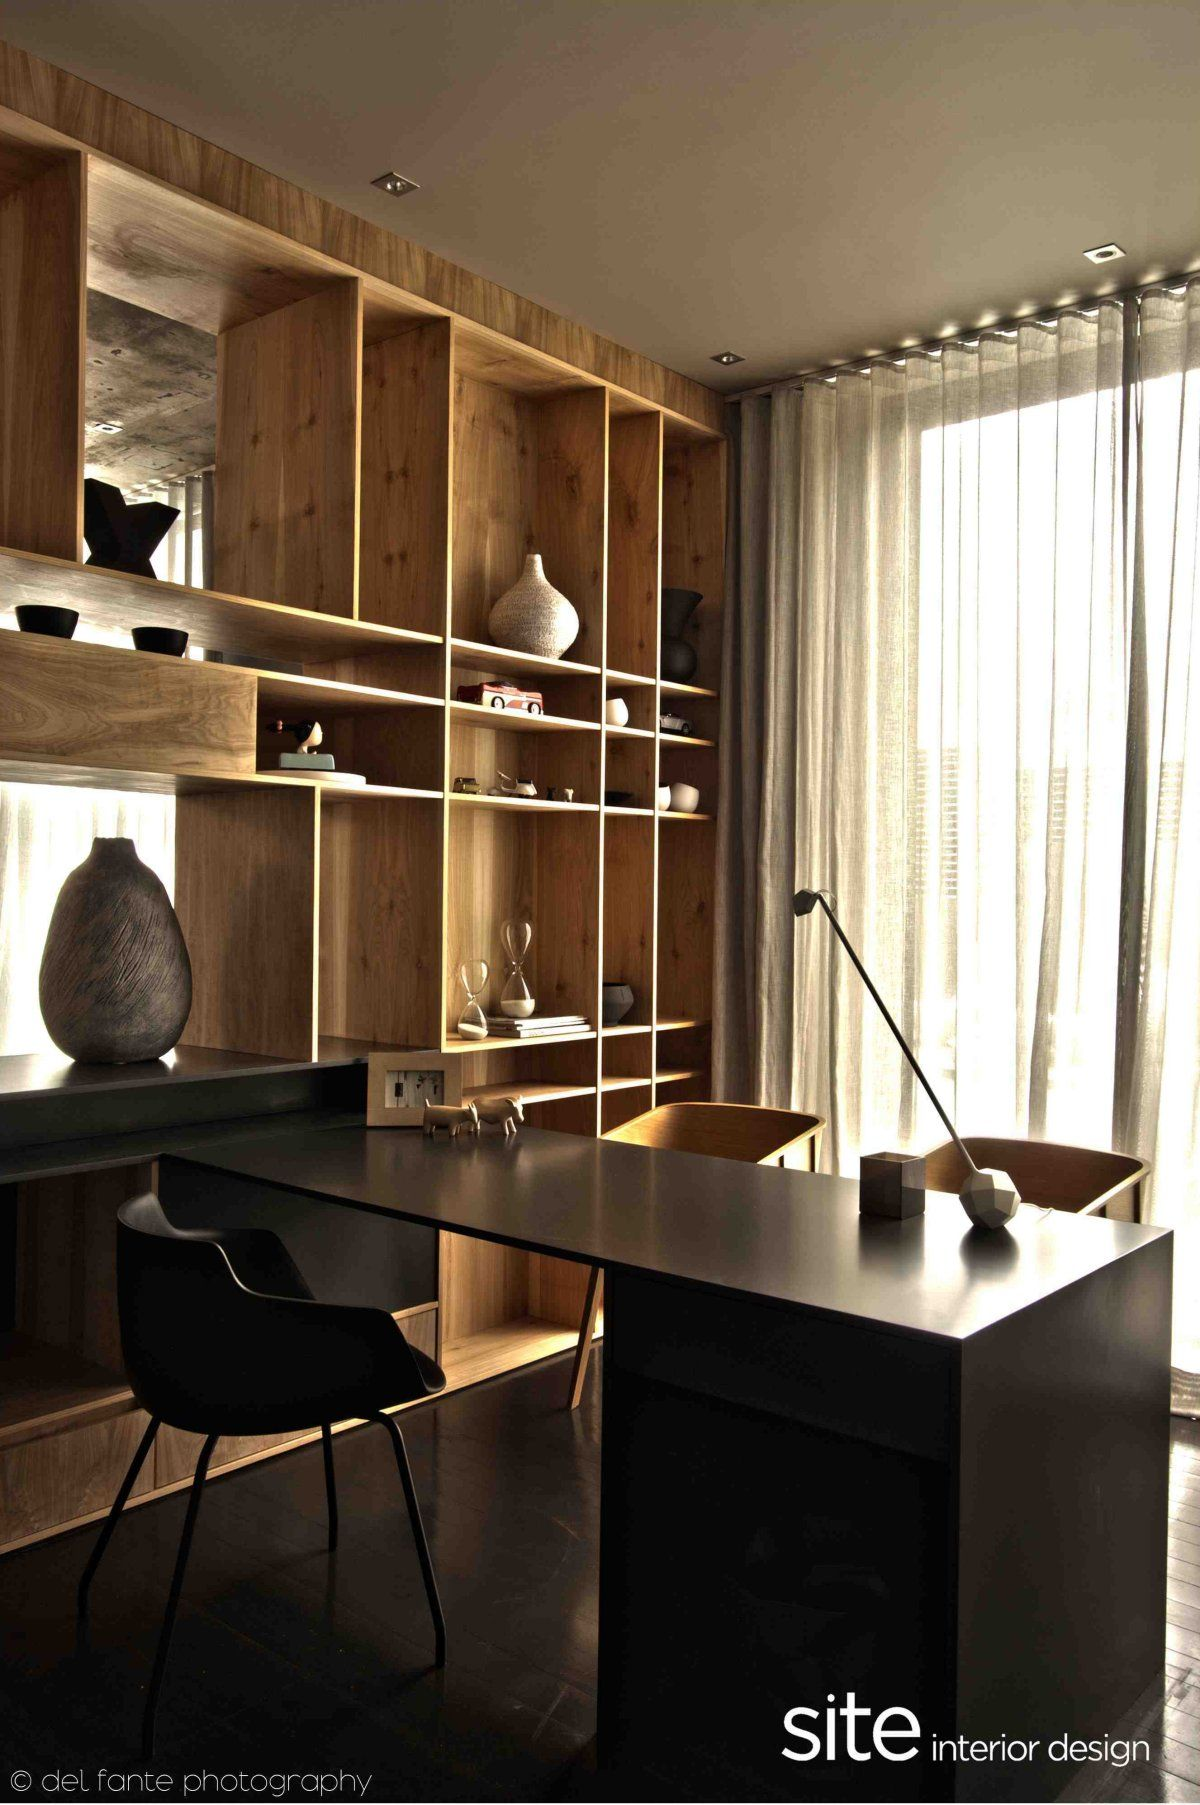 Aupiais House by Site Interior Design  Library Study  Home office